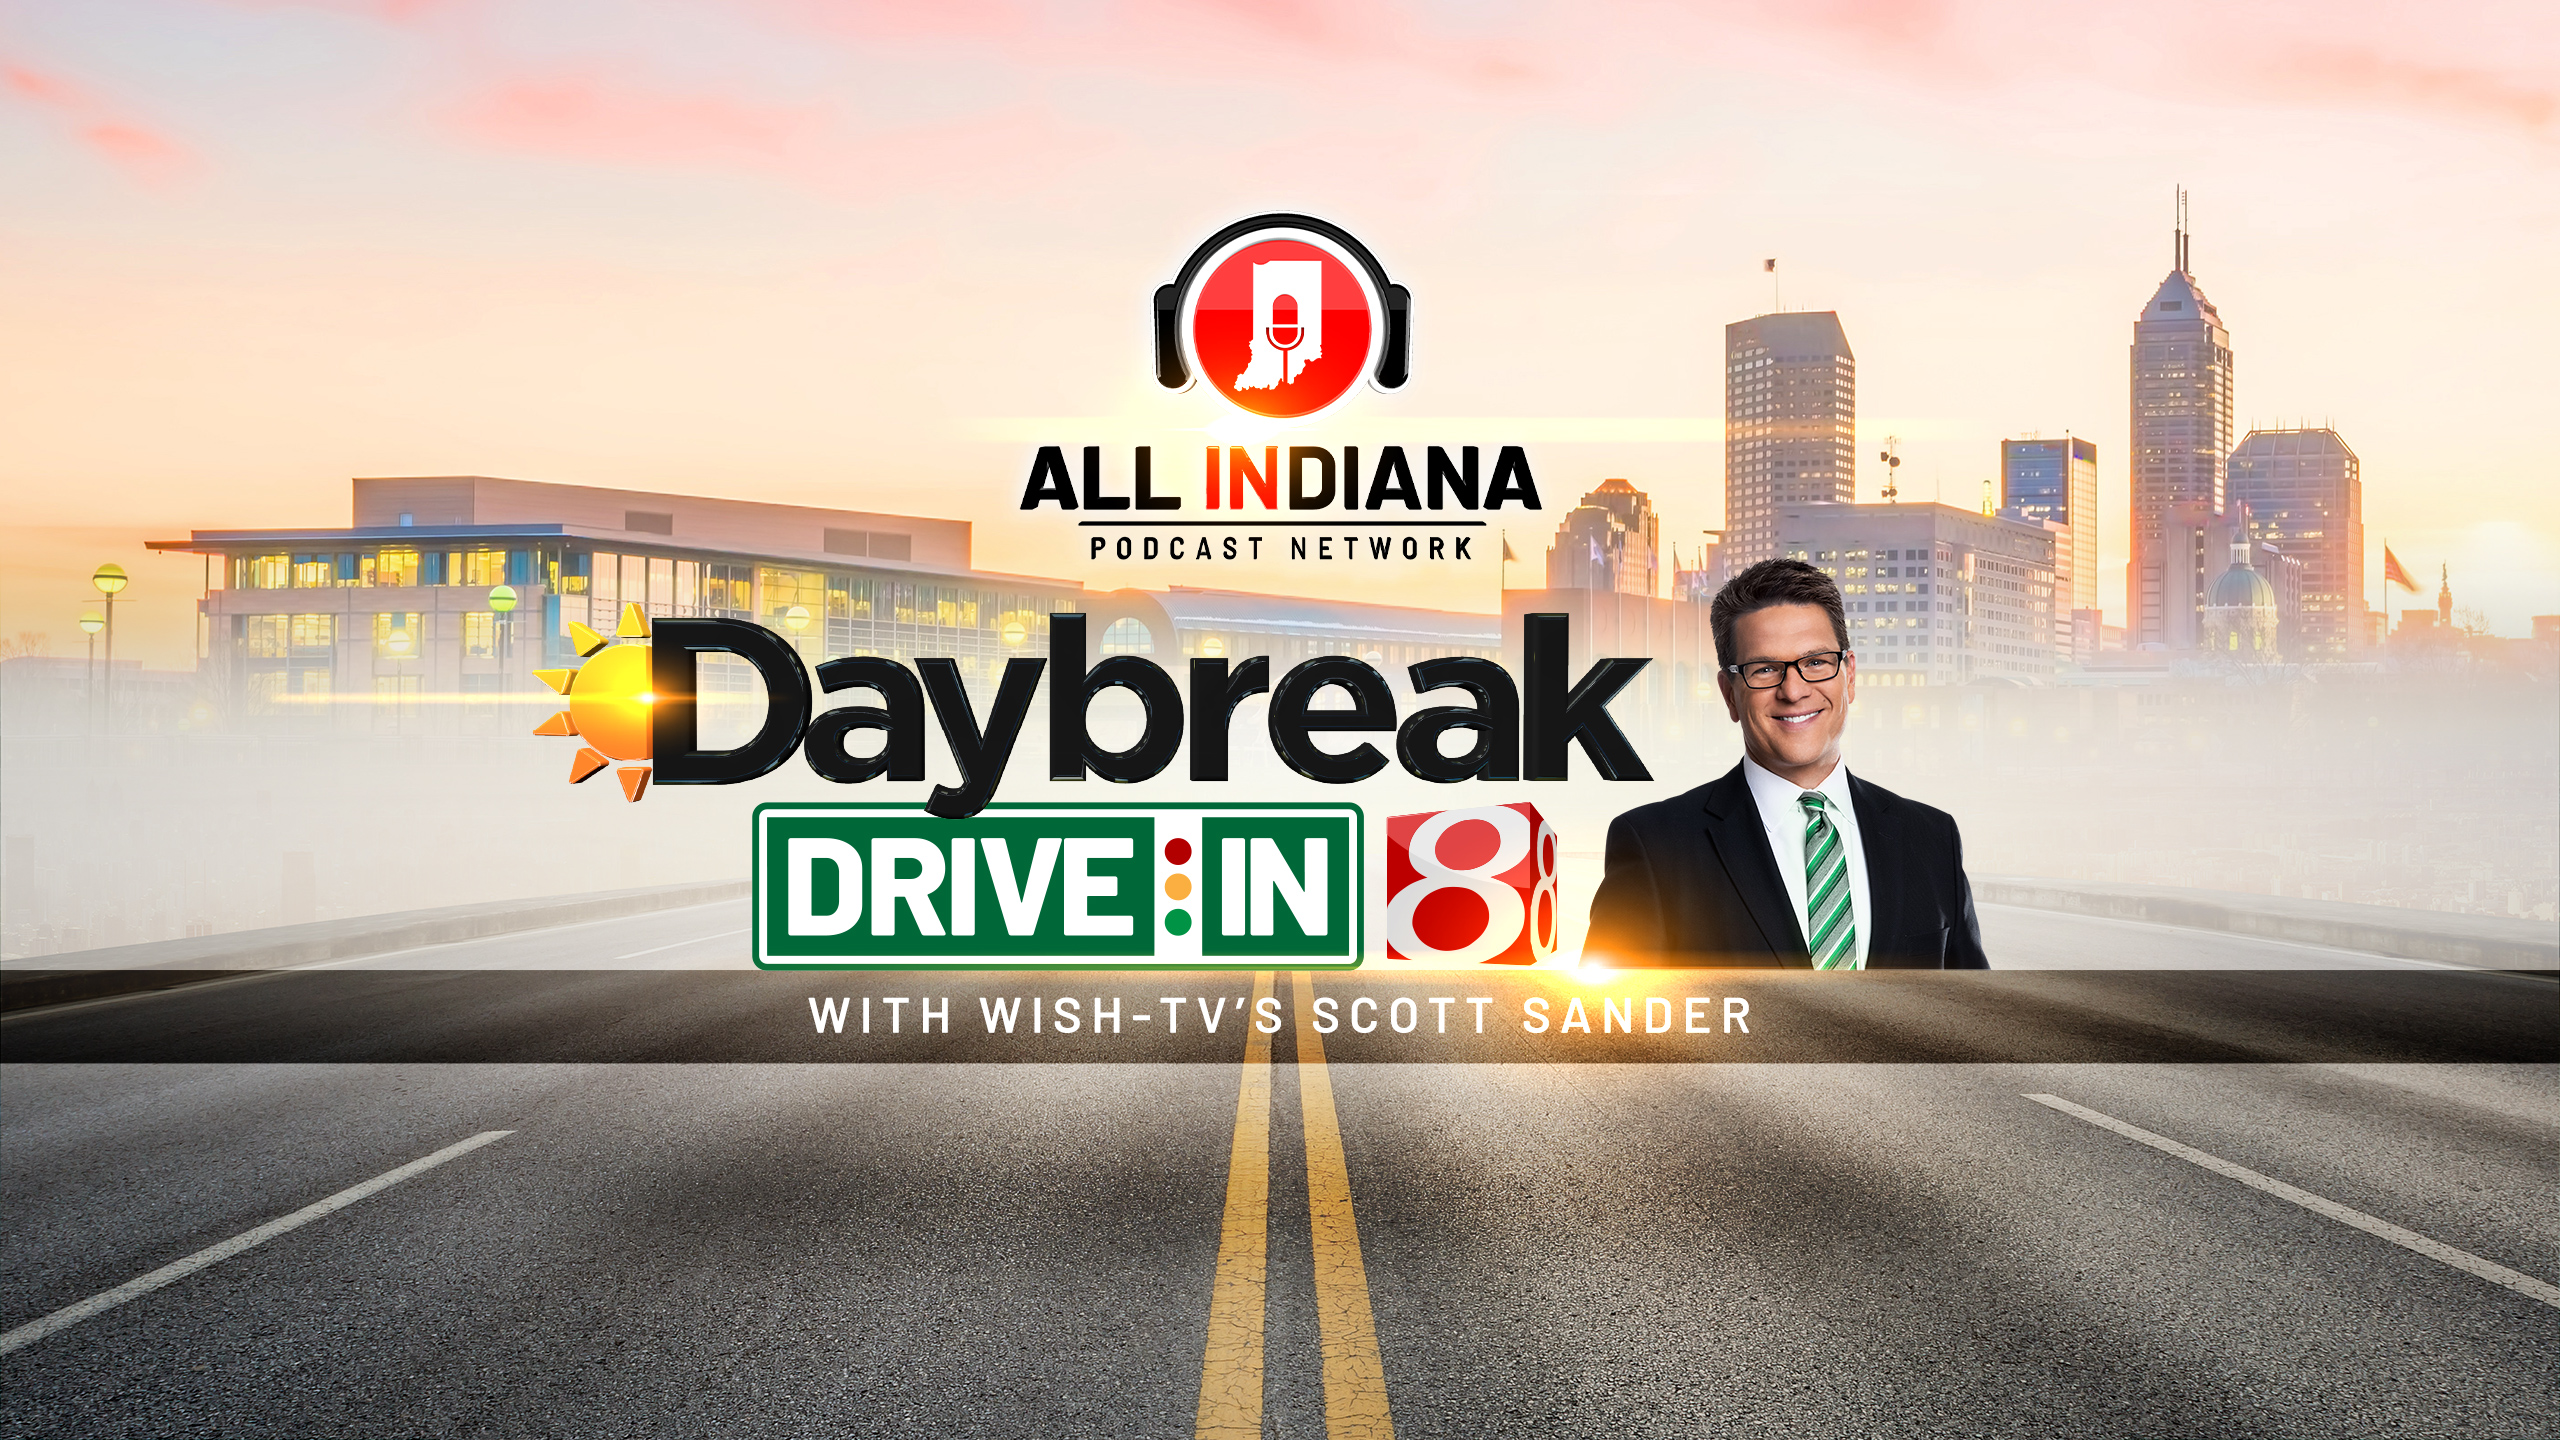 June 11, 2021: Farewell to the oldest Hoosier - WISH-TV